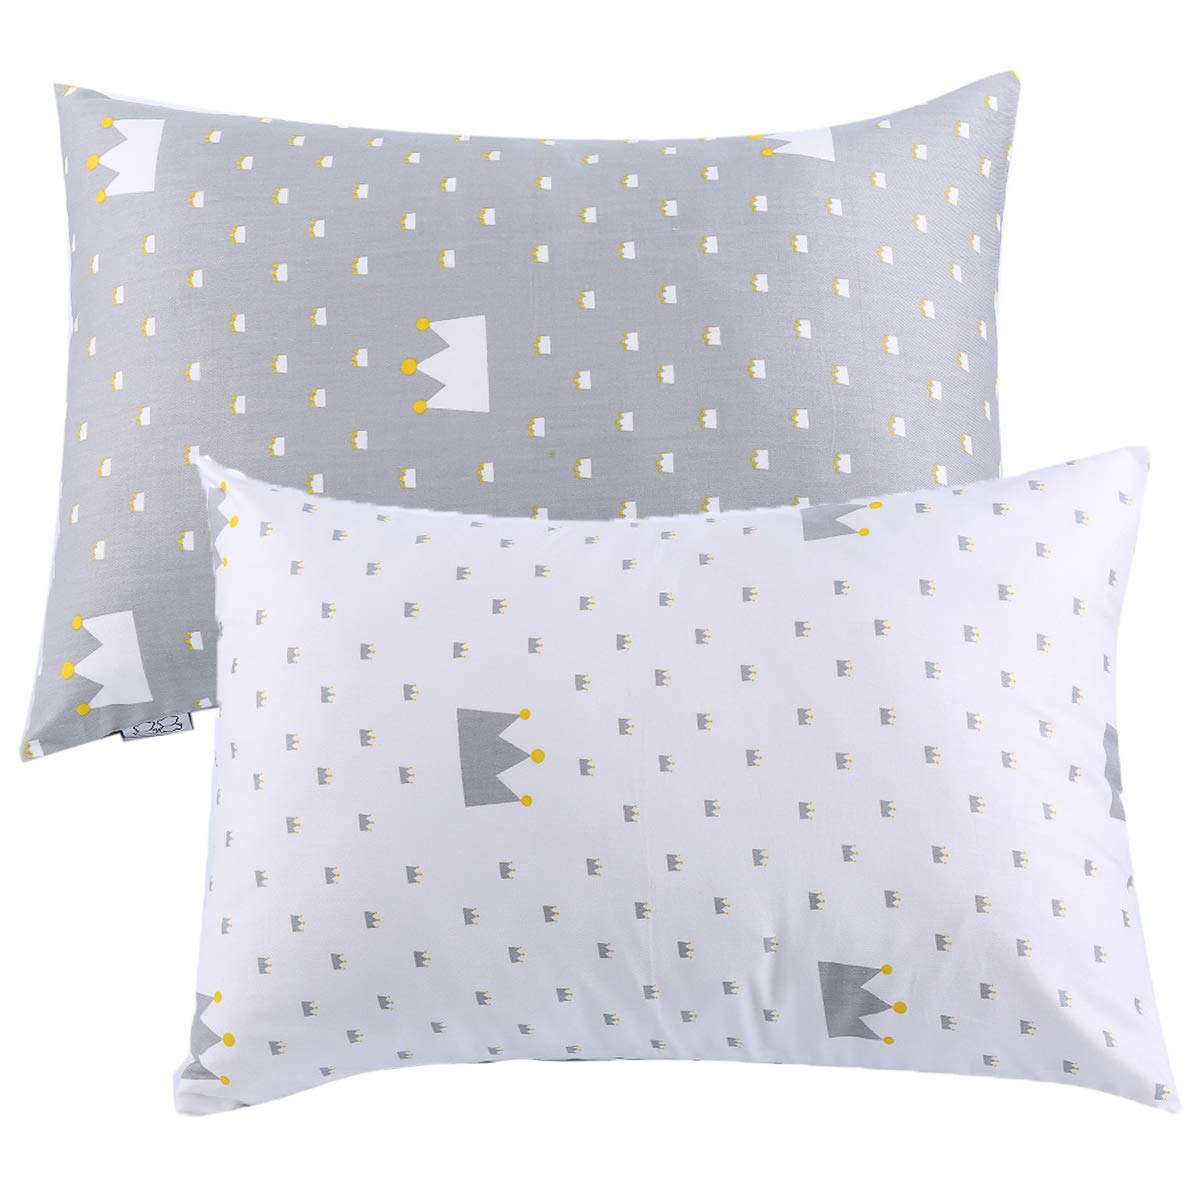 Kids Toddler Pillowcases UOMNY 2 Pack 100% Cotton Pillow Cover Cases 13 x 18 for Kids Bedding White/grey Crown kids-pillowcase 4